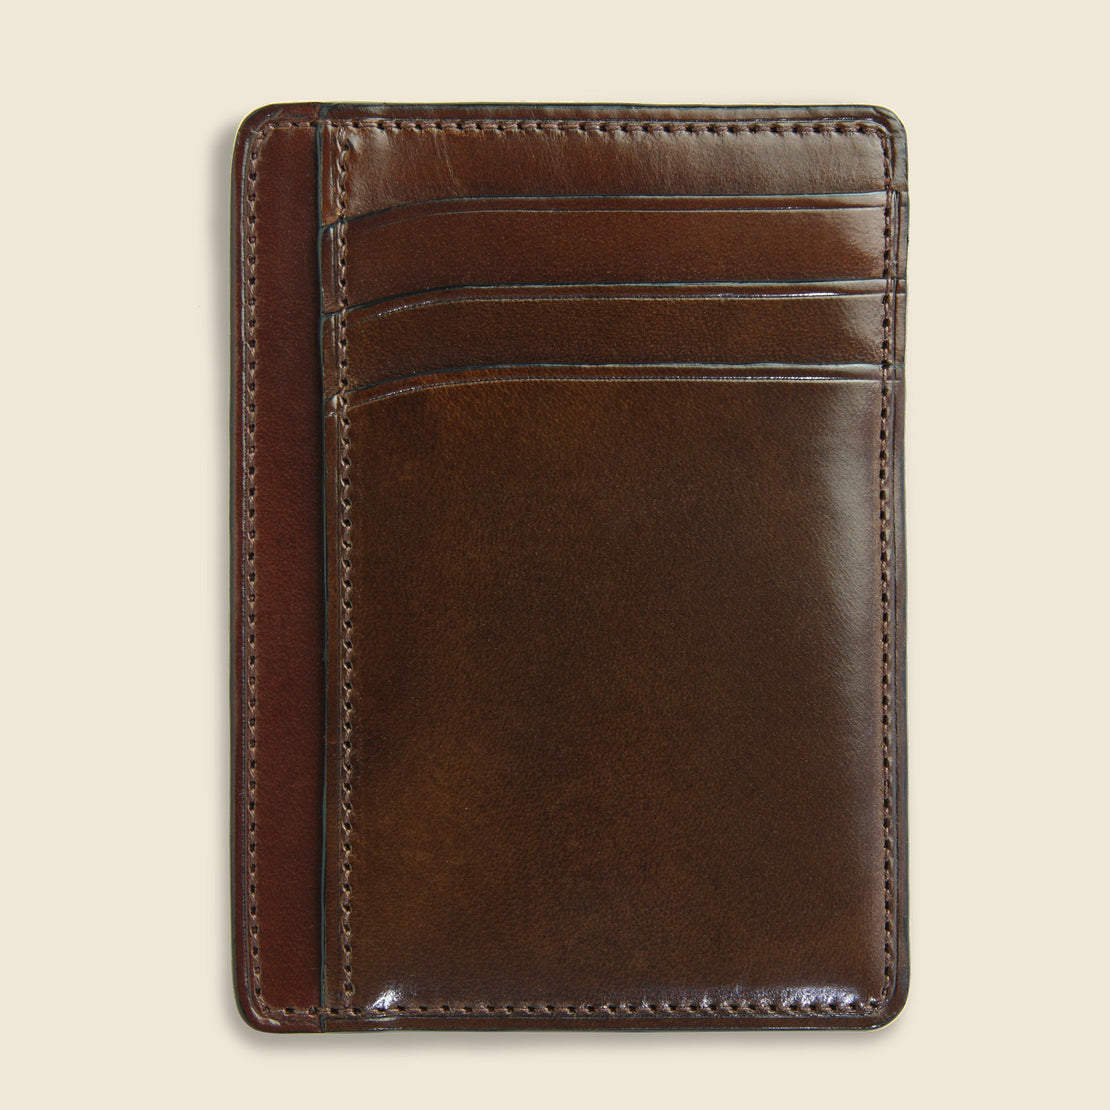 Card and Document Case - Dark Brown - Il Bussetto - STAG Provisions - Accessories - Wallets